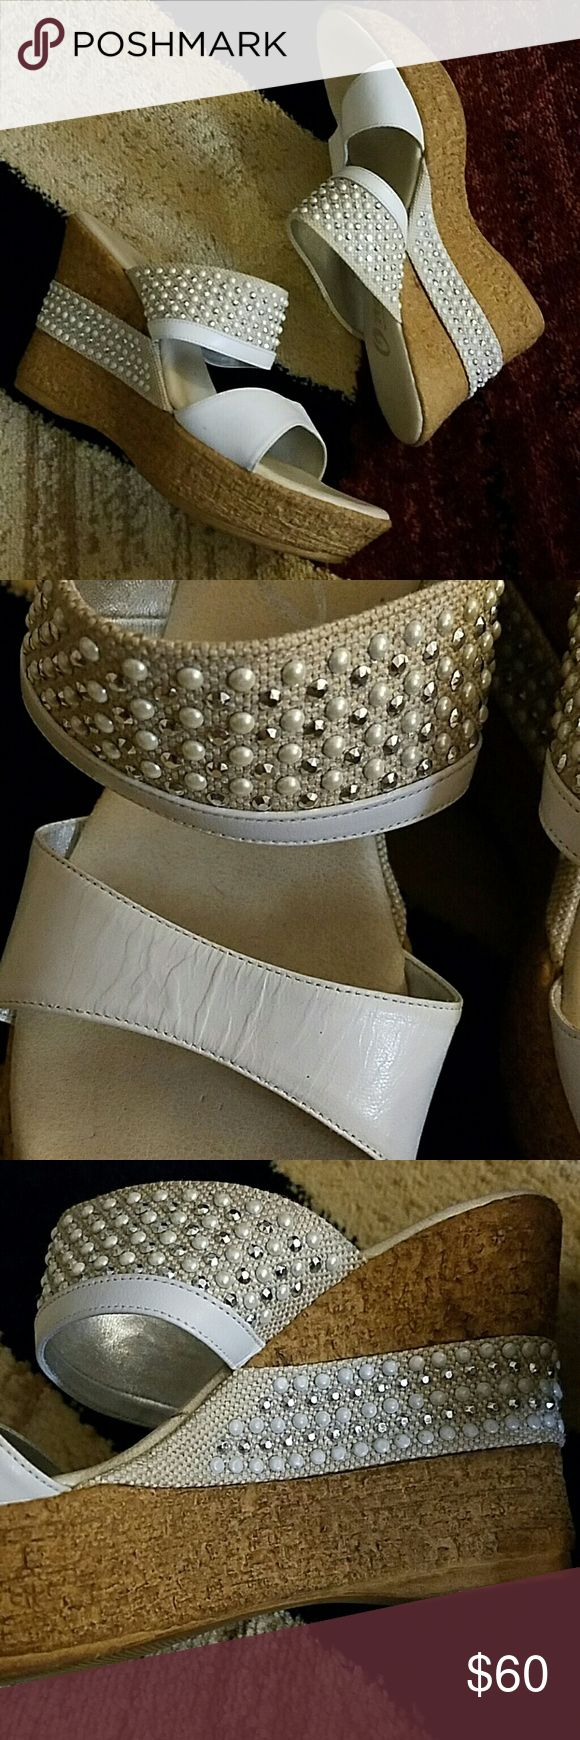 Super cute white Onex wedges size 9 Super cute white Onex wedges size 9. In great condition- hardly worn at all. Really comfy too ?? onex Shoes Wedges